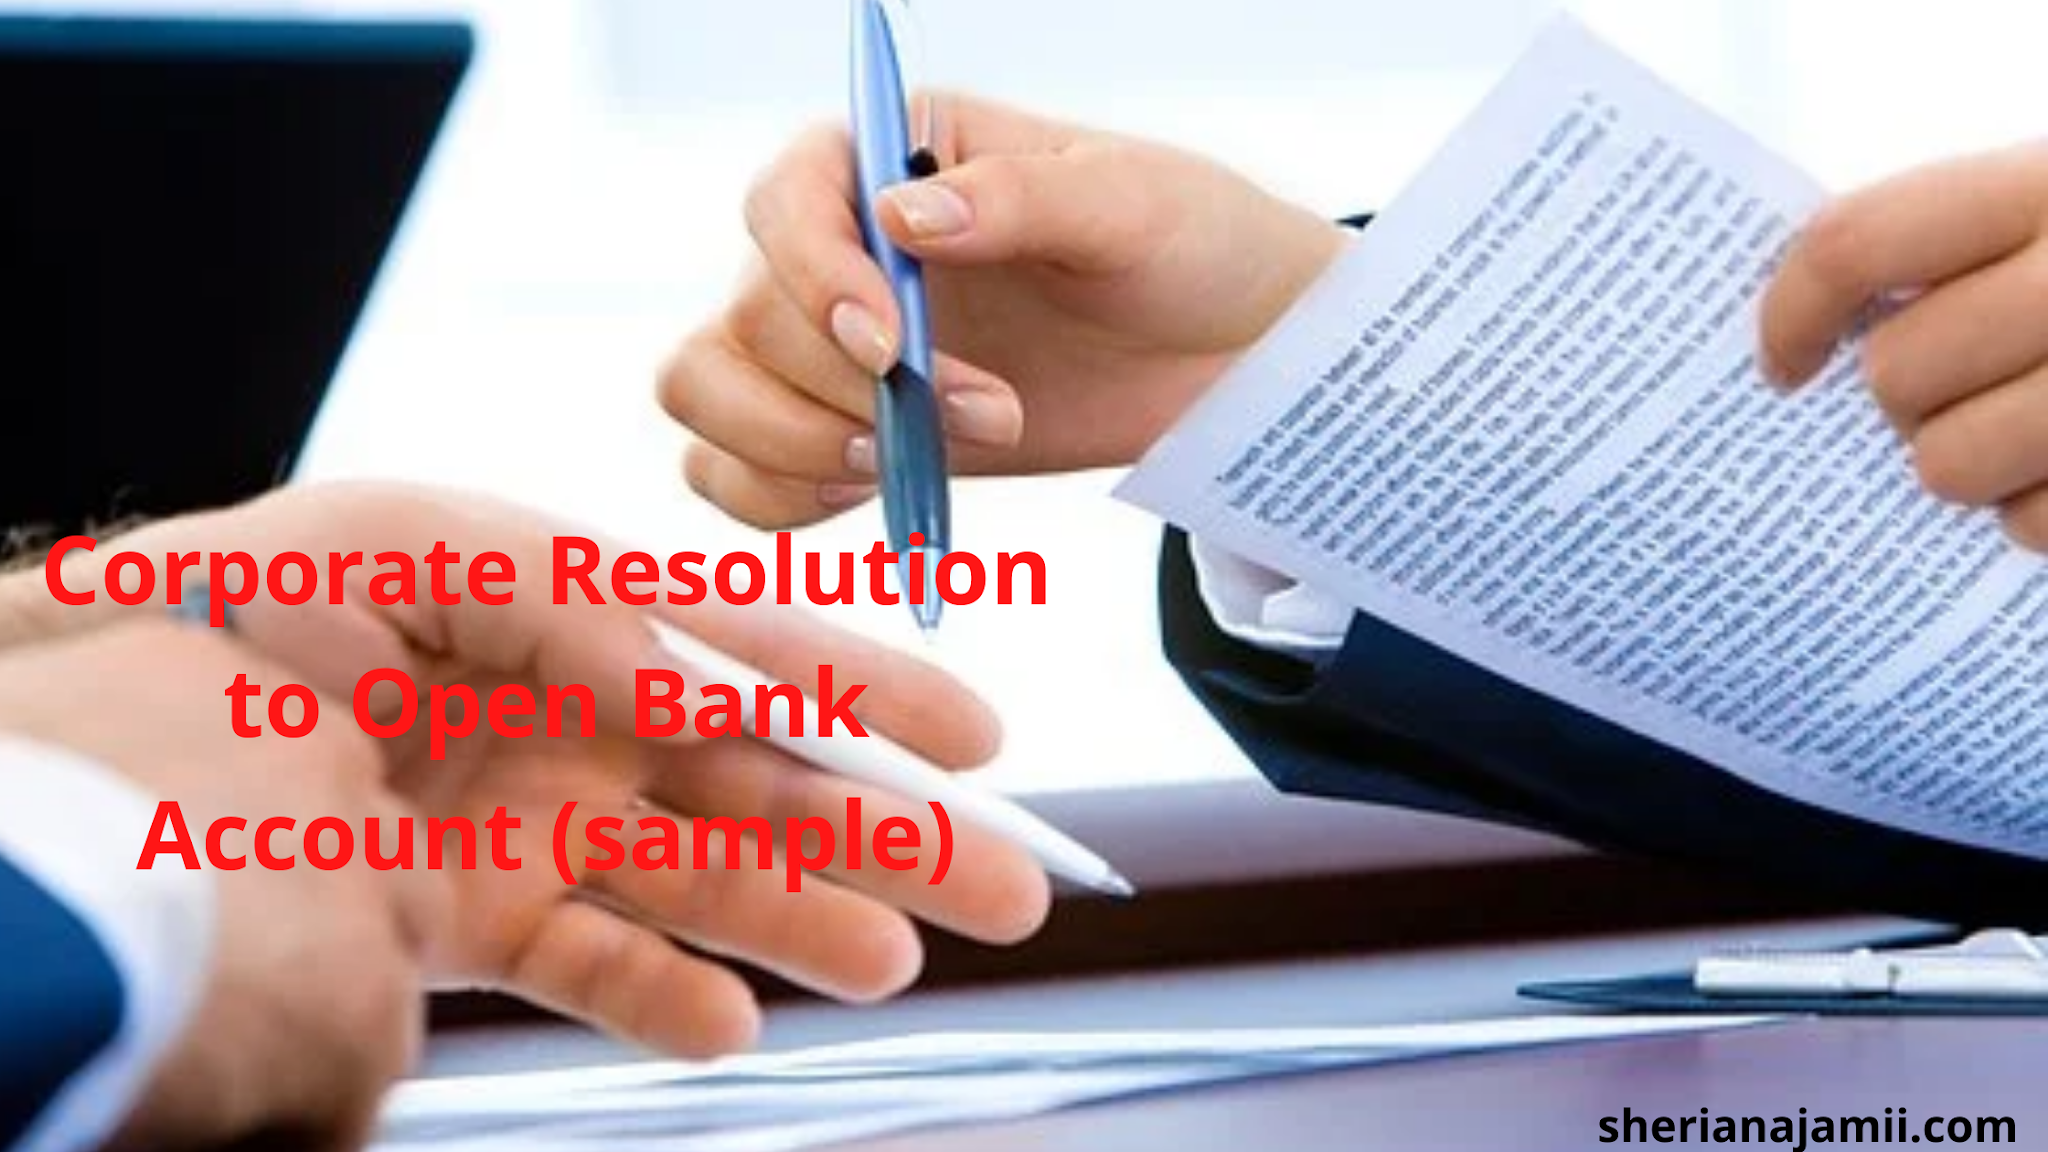 Corporate Resolution to Open Bank Account (sample)